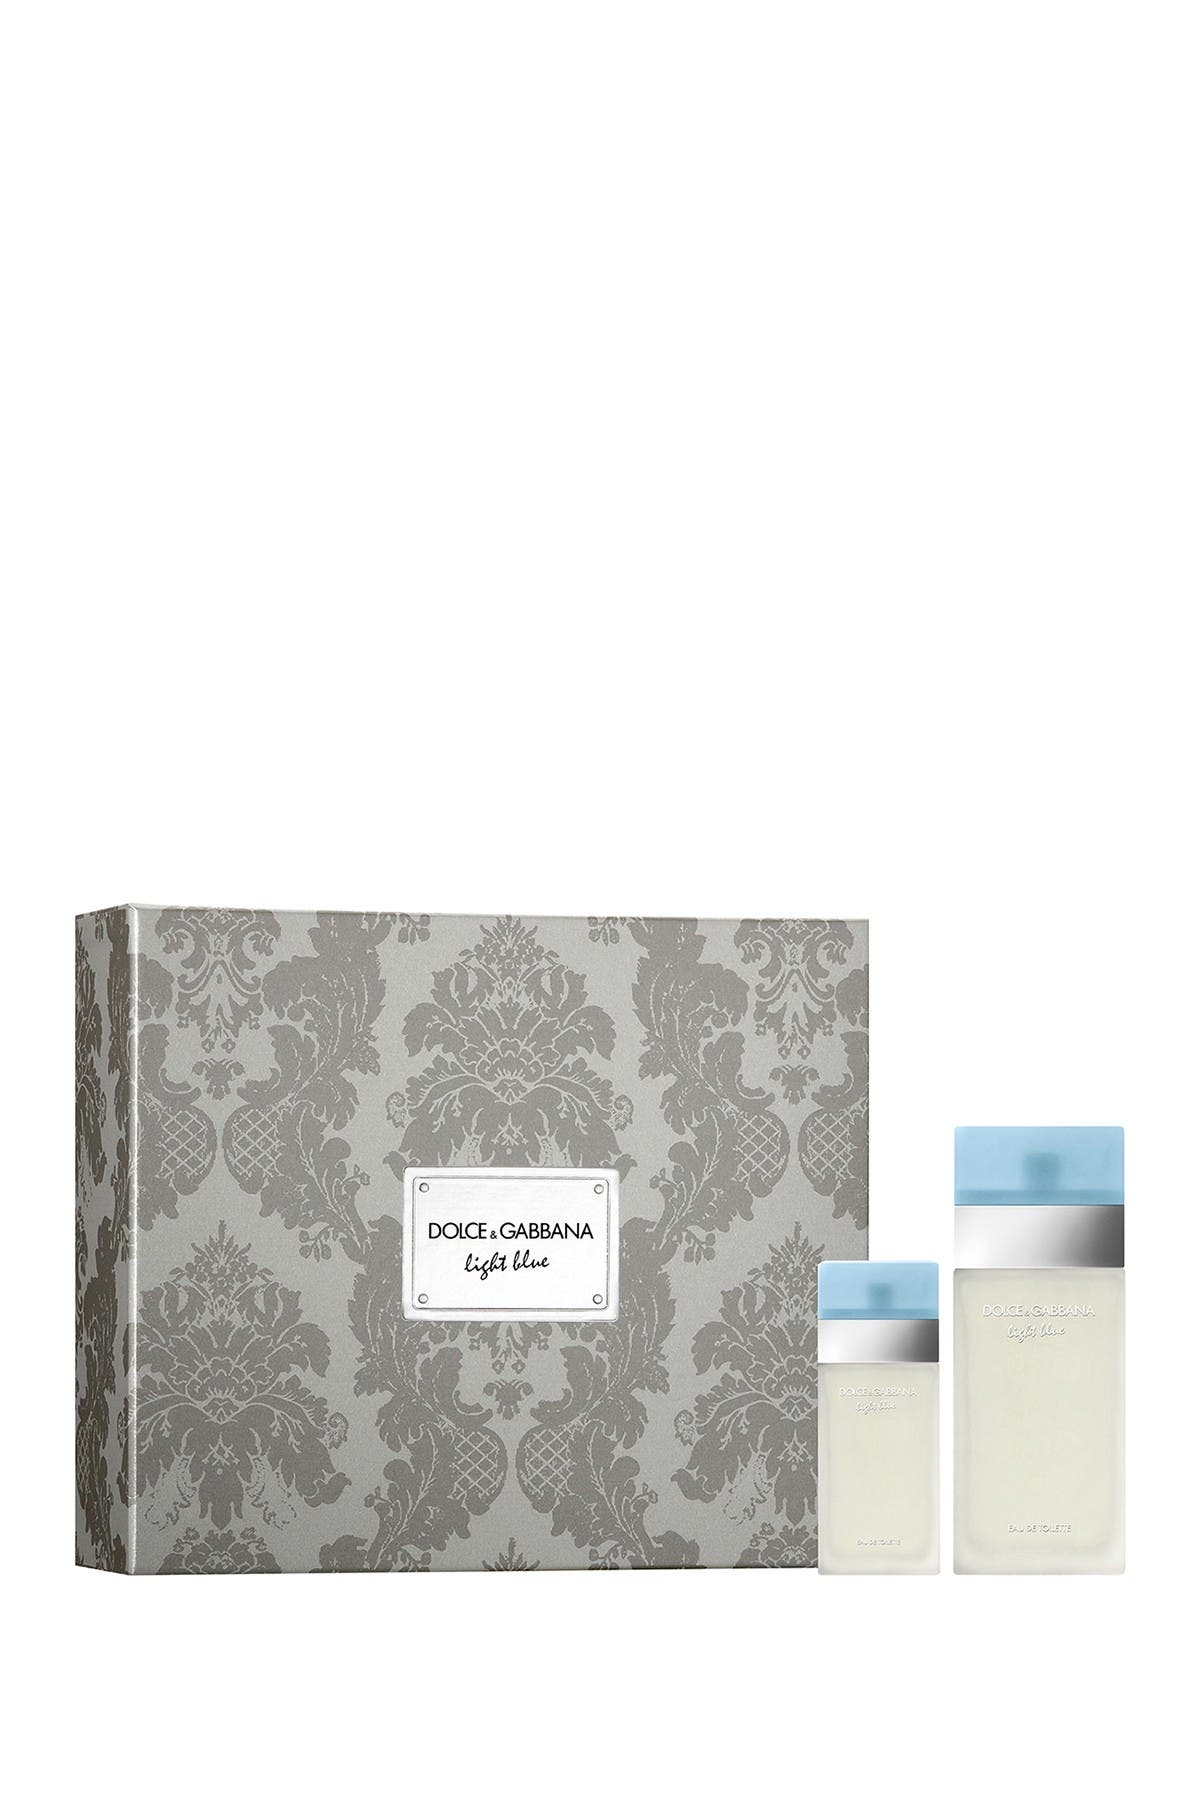 Image of Dolce & Gabbana Light Blue 2-Piece Gift Set